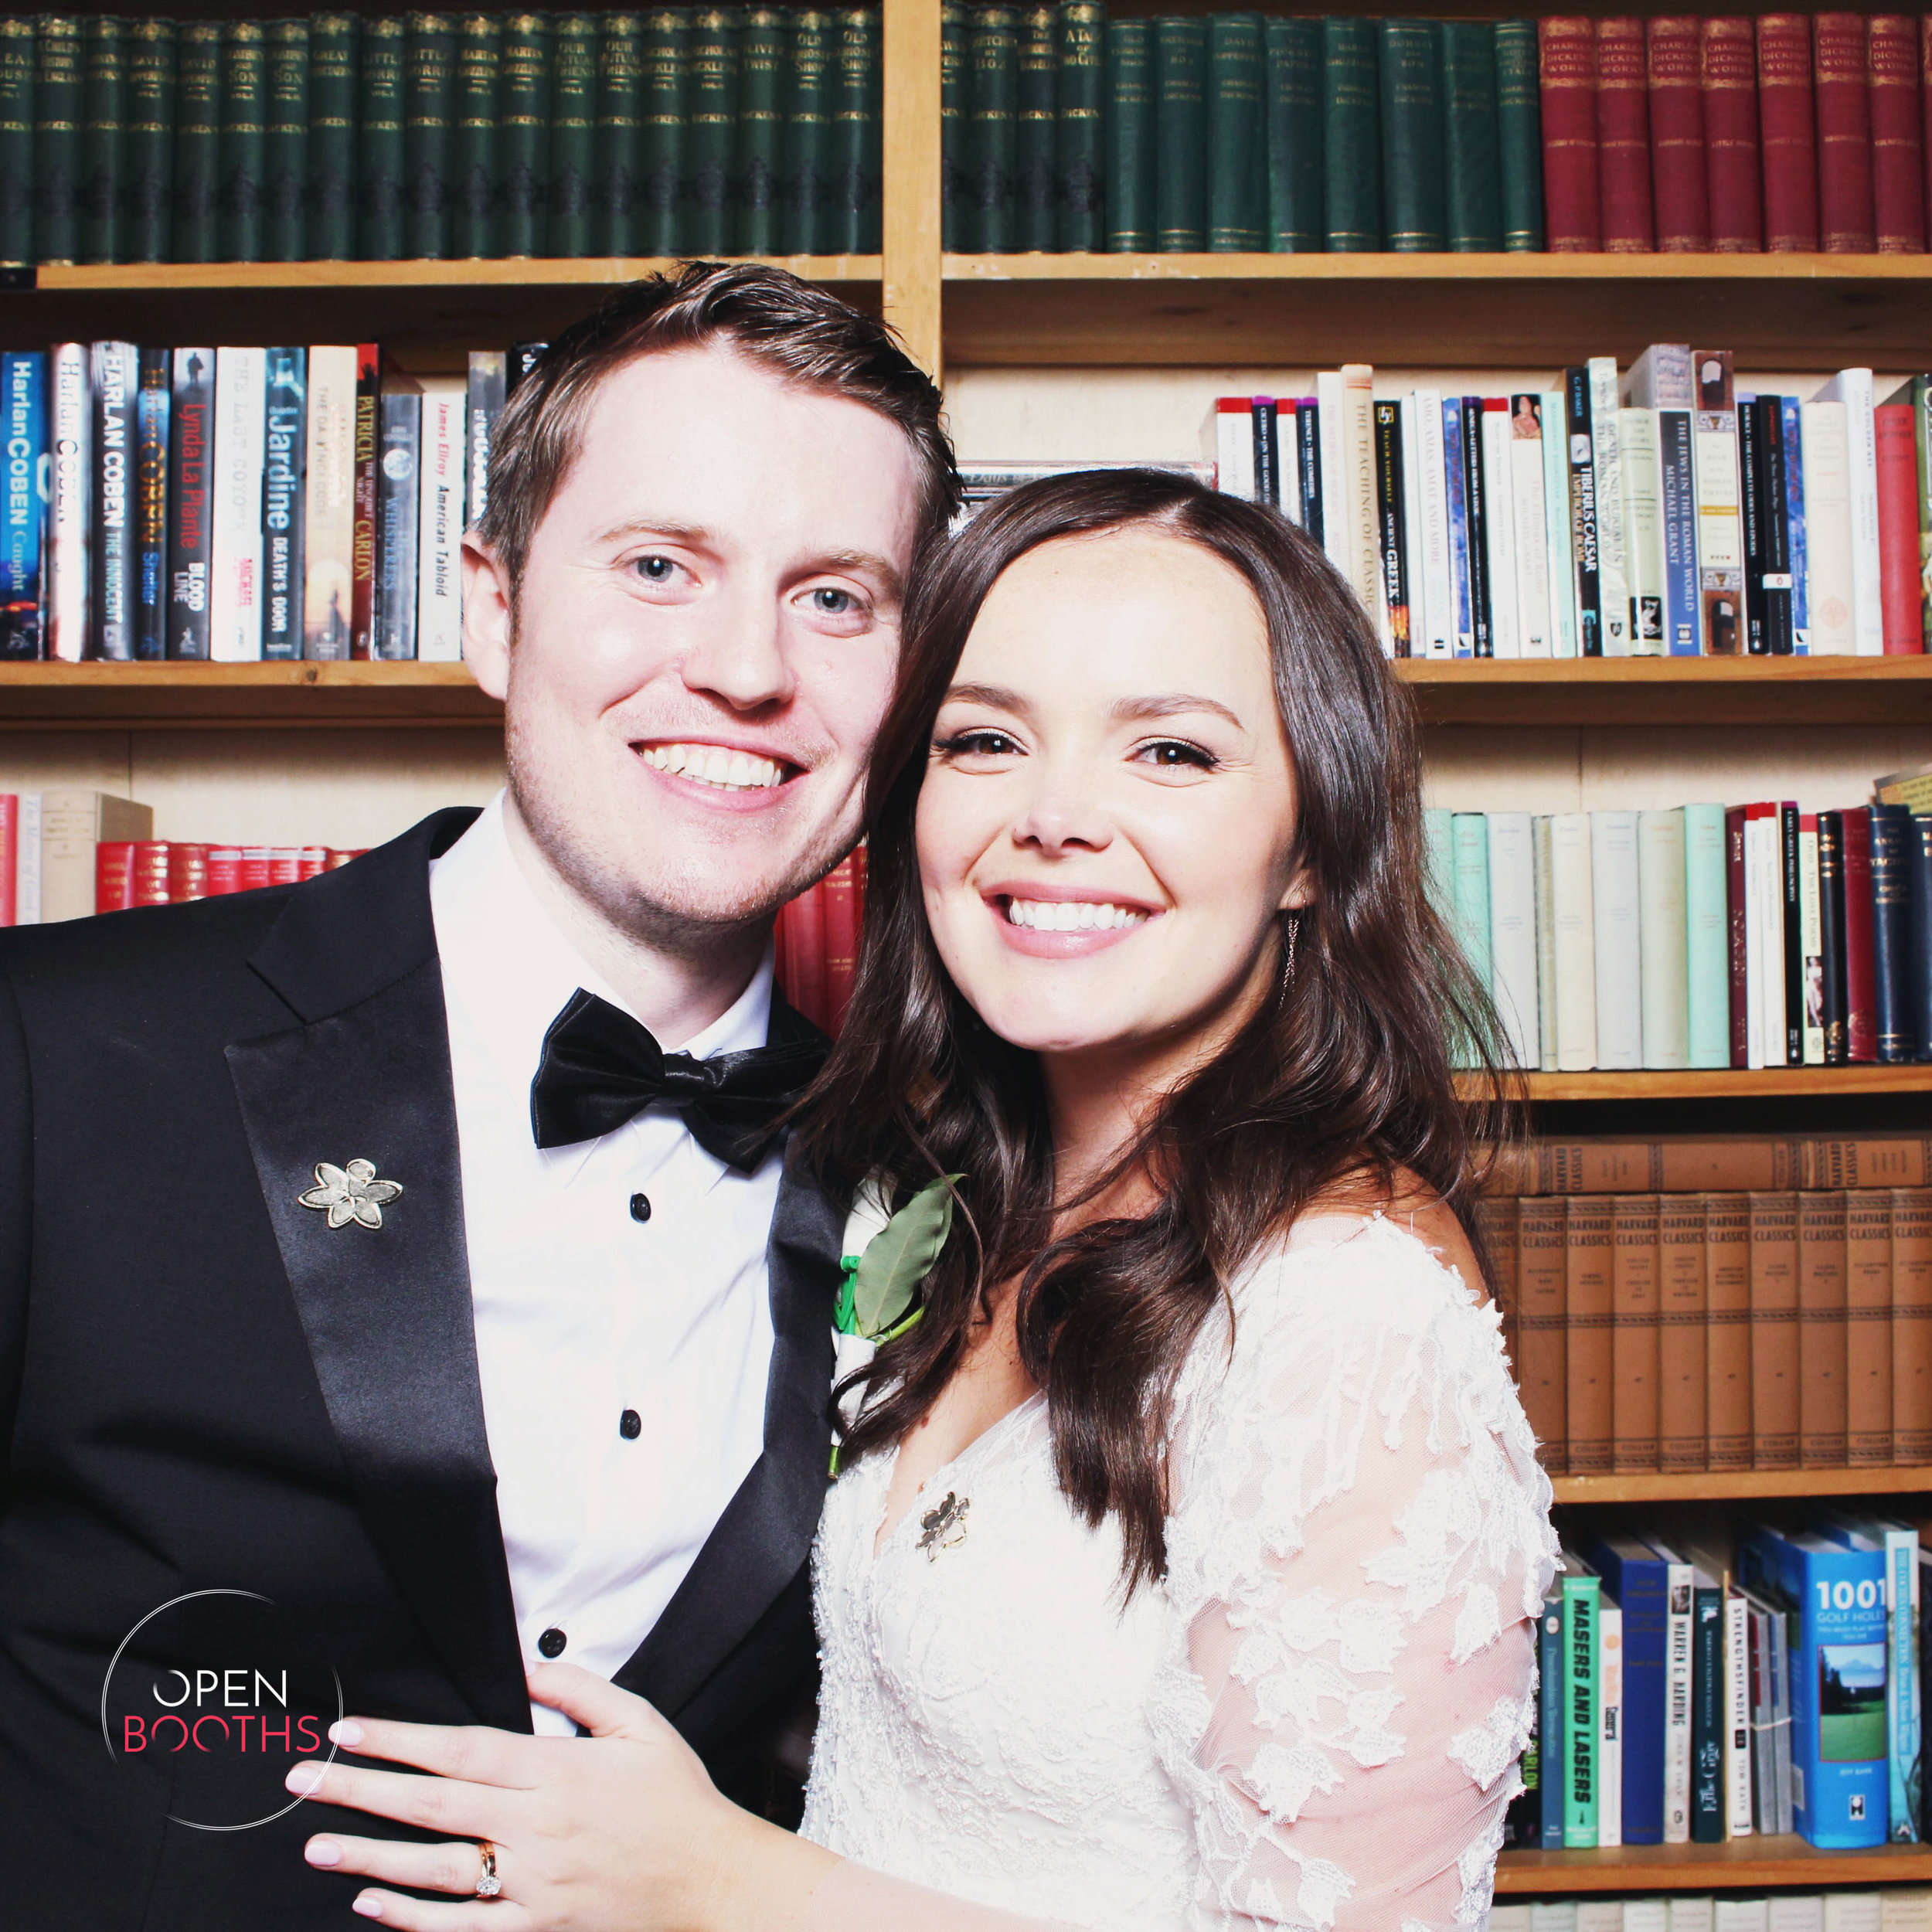 OpenBooths-Ryan&Jordan'sWedding(13-4-18)(IndividualPhotos)-113.jpg